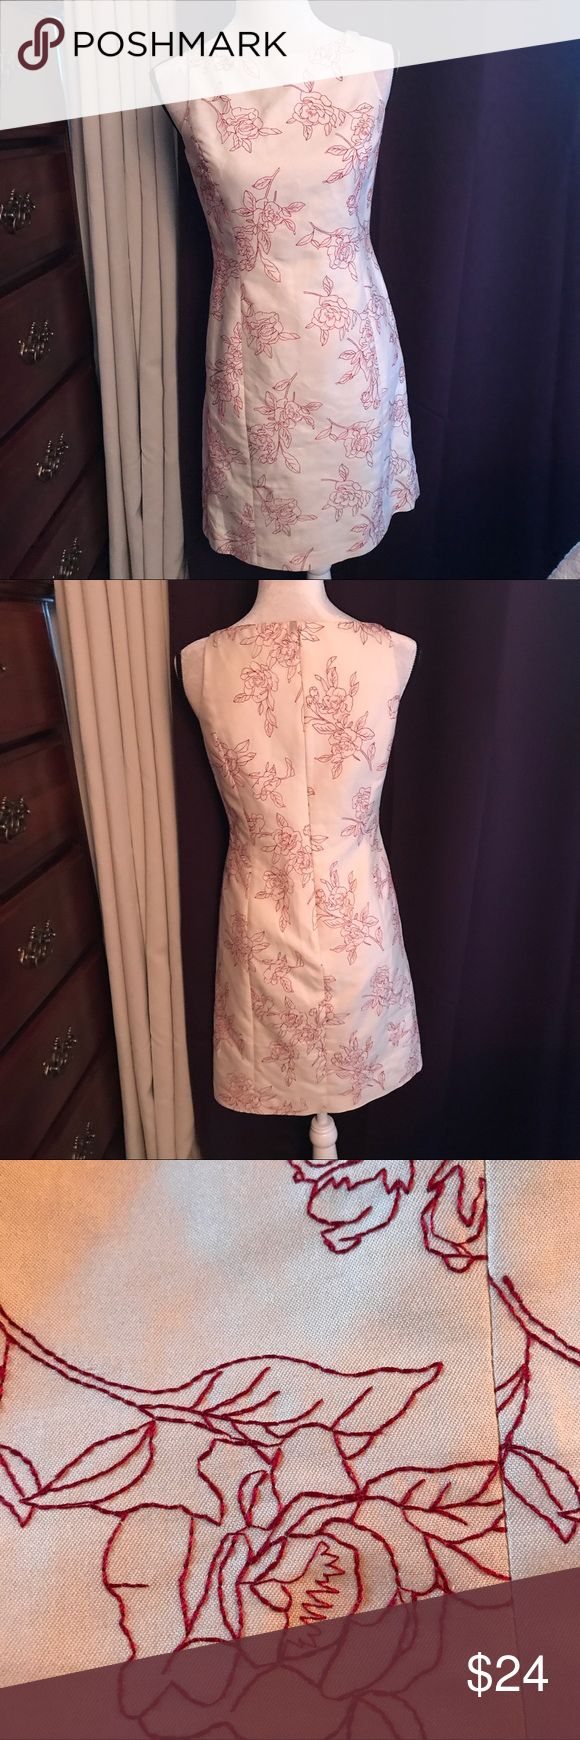 """So Nice, 🌺Ann Taylor🌺 Off white with red thread embroidered flowers in the fabric. 🌺Worn Once. 🌺.  Size 4 Petite, 35"""" long, fully lined. Has bra strap holder snaps on the shoulders. 🌺 76% cotton, 24% Silk.    Ann Taylor. Ann Taylor Dresses"""